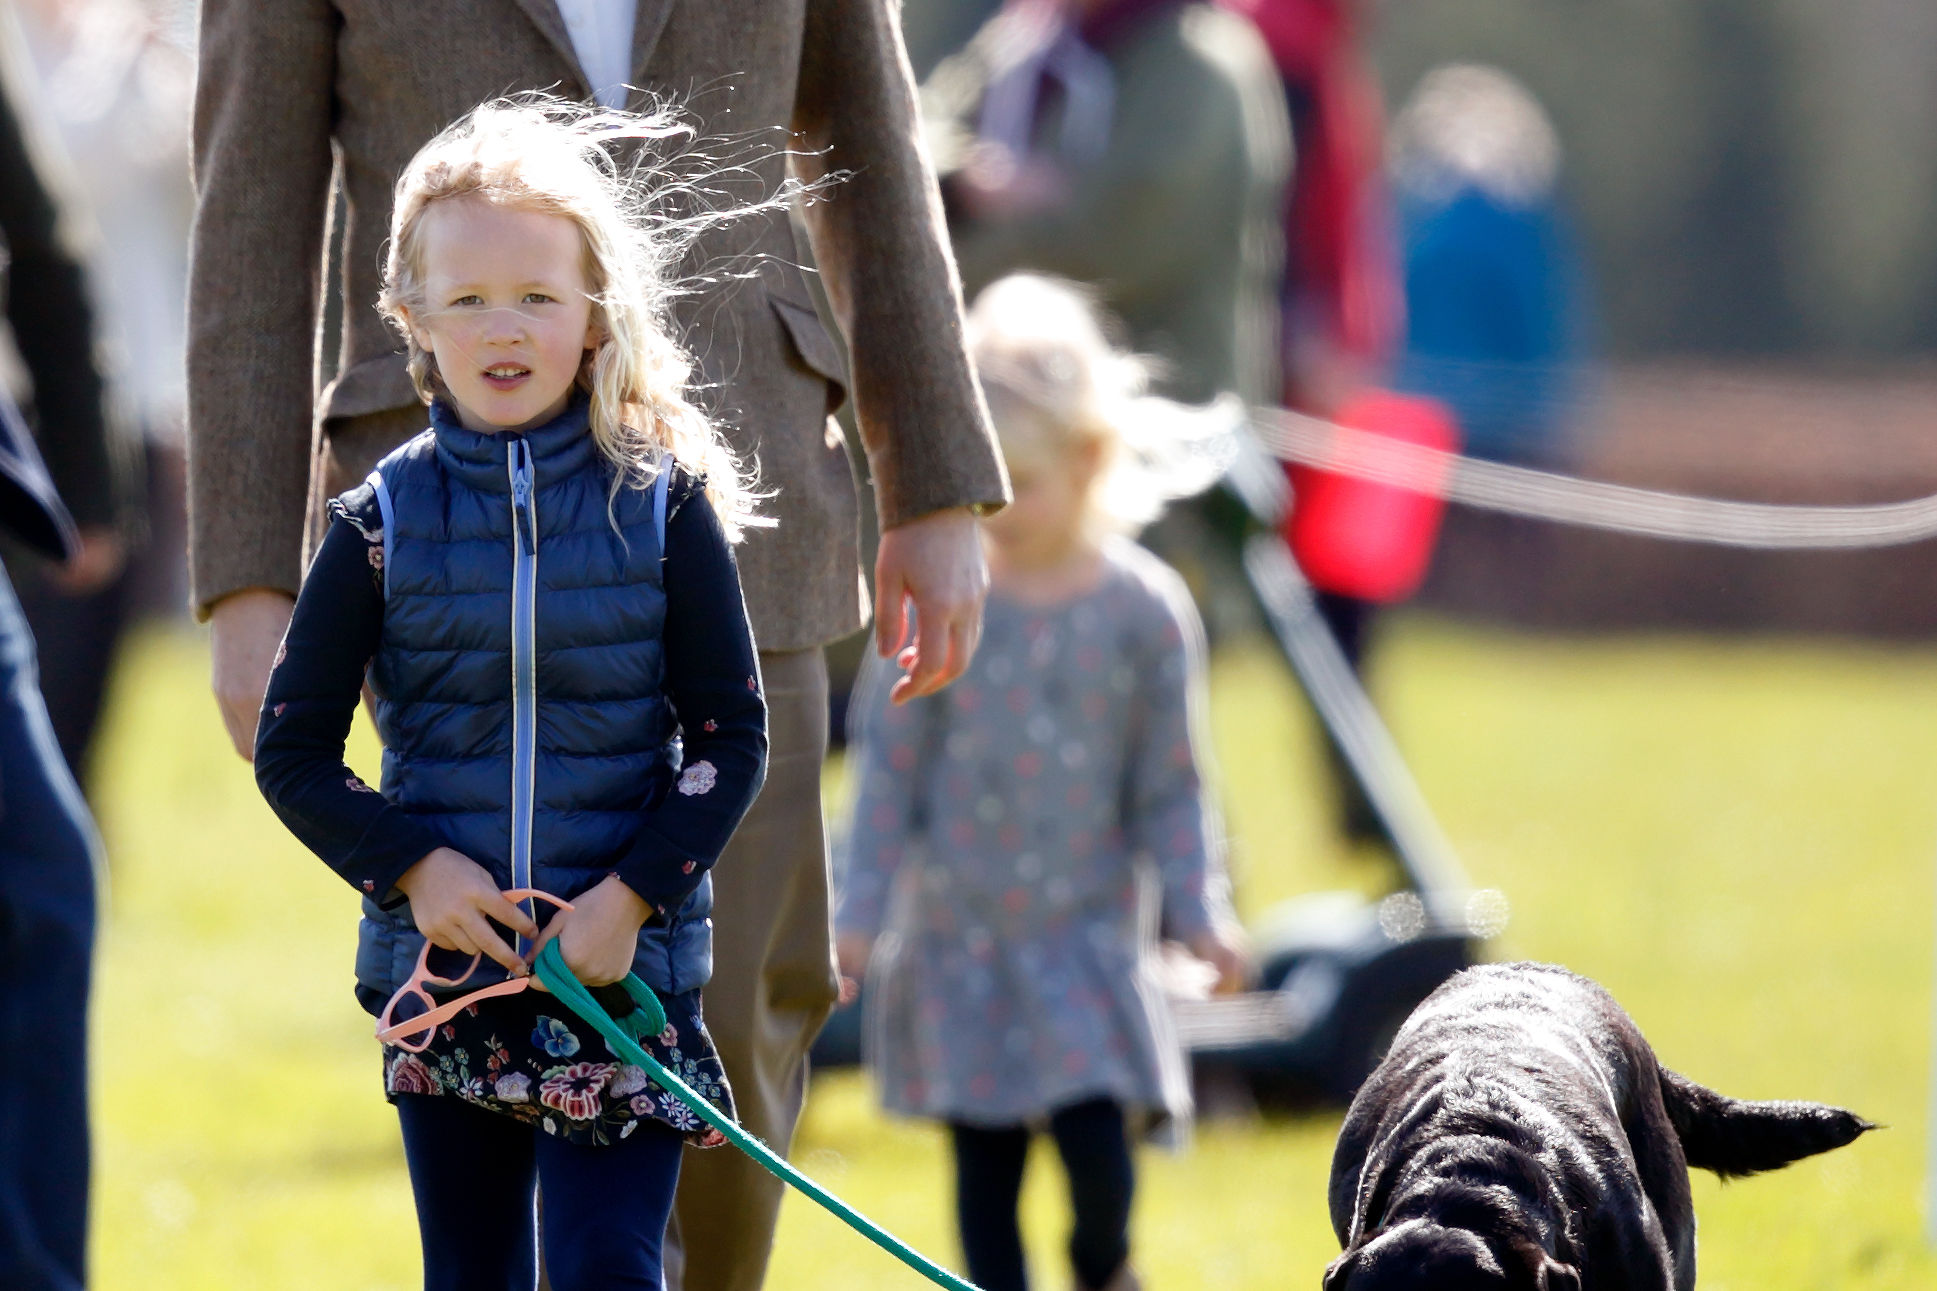 The Queen's Great-Granddaughter Savannah Phillips Is 14th In Line For the Throne